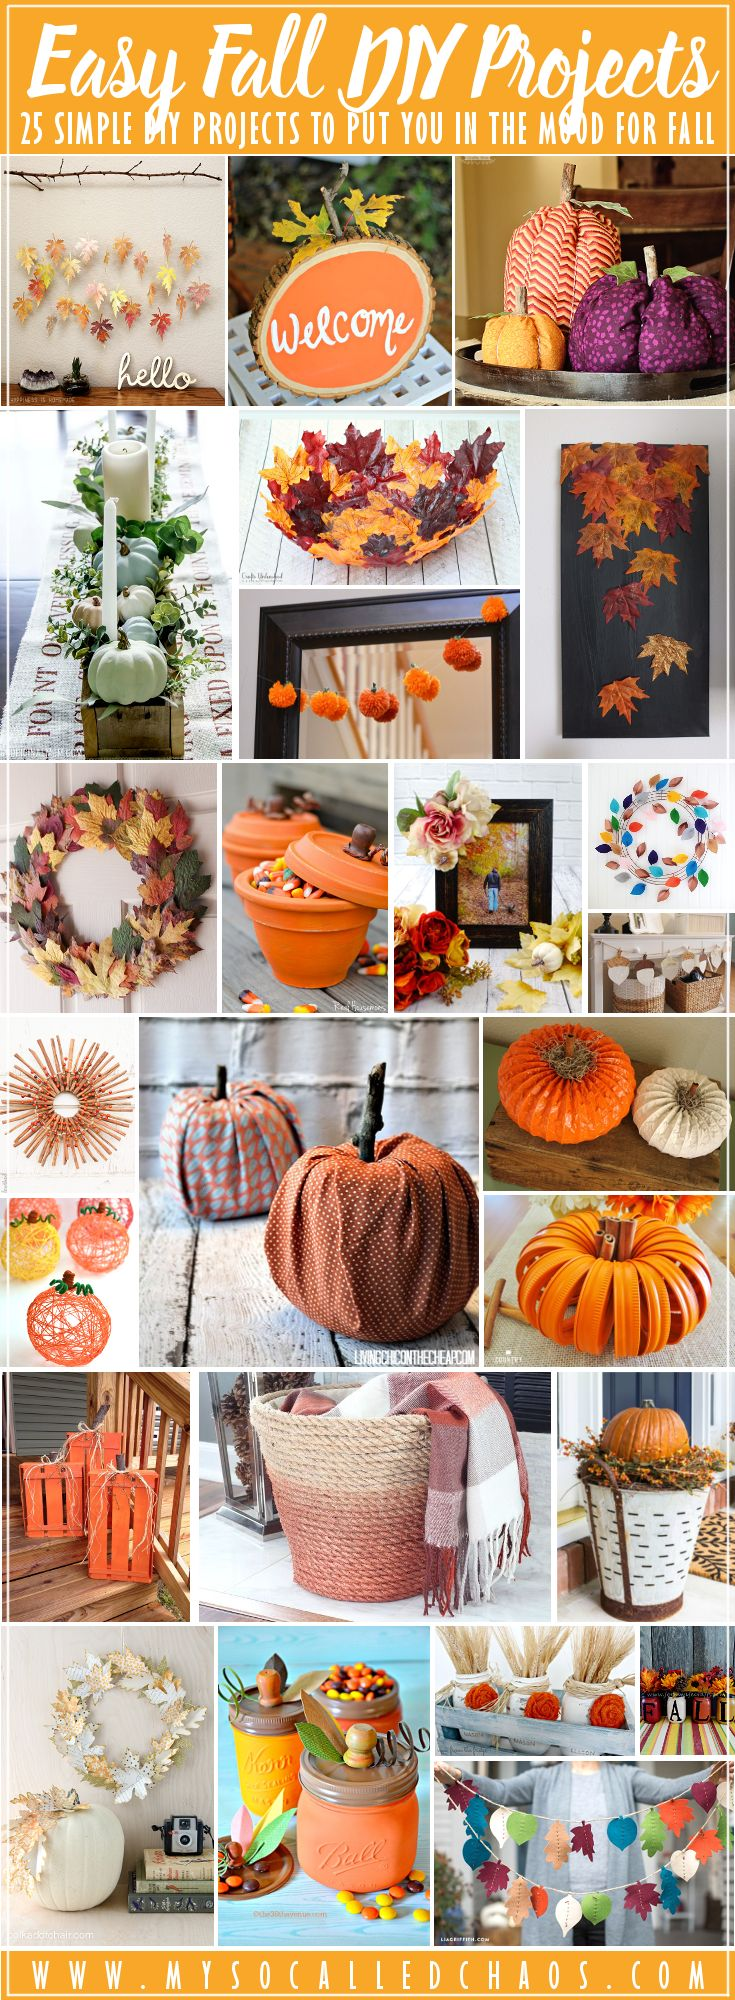 25 Easy Fall DIY Projects to Put